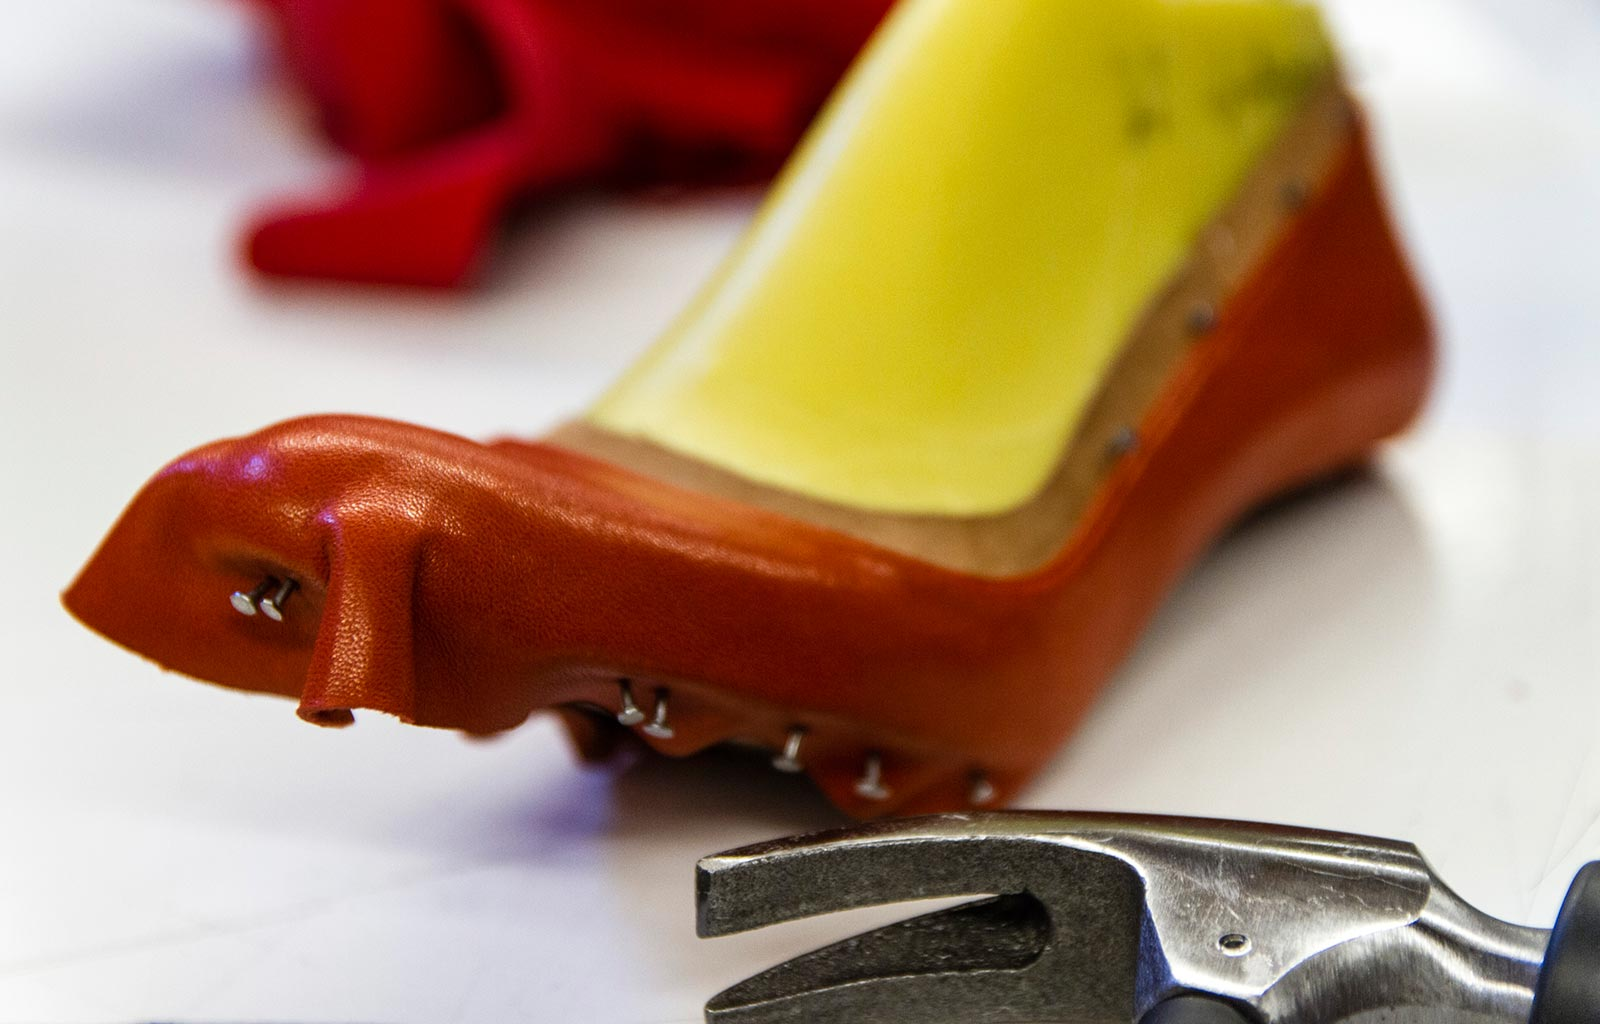 Postgraduate Course in Footwear Design